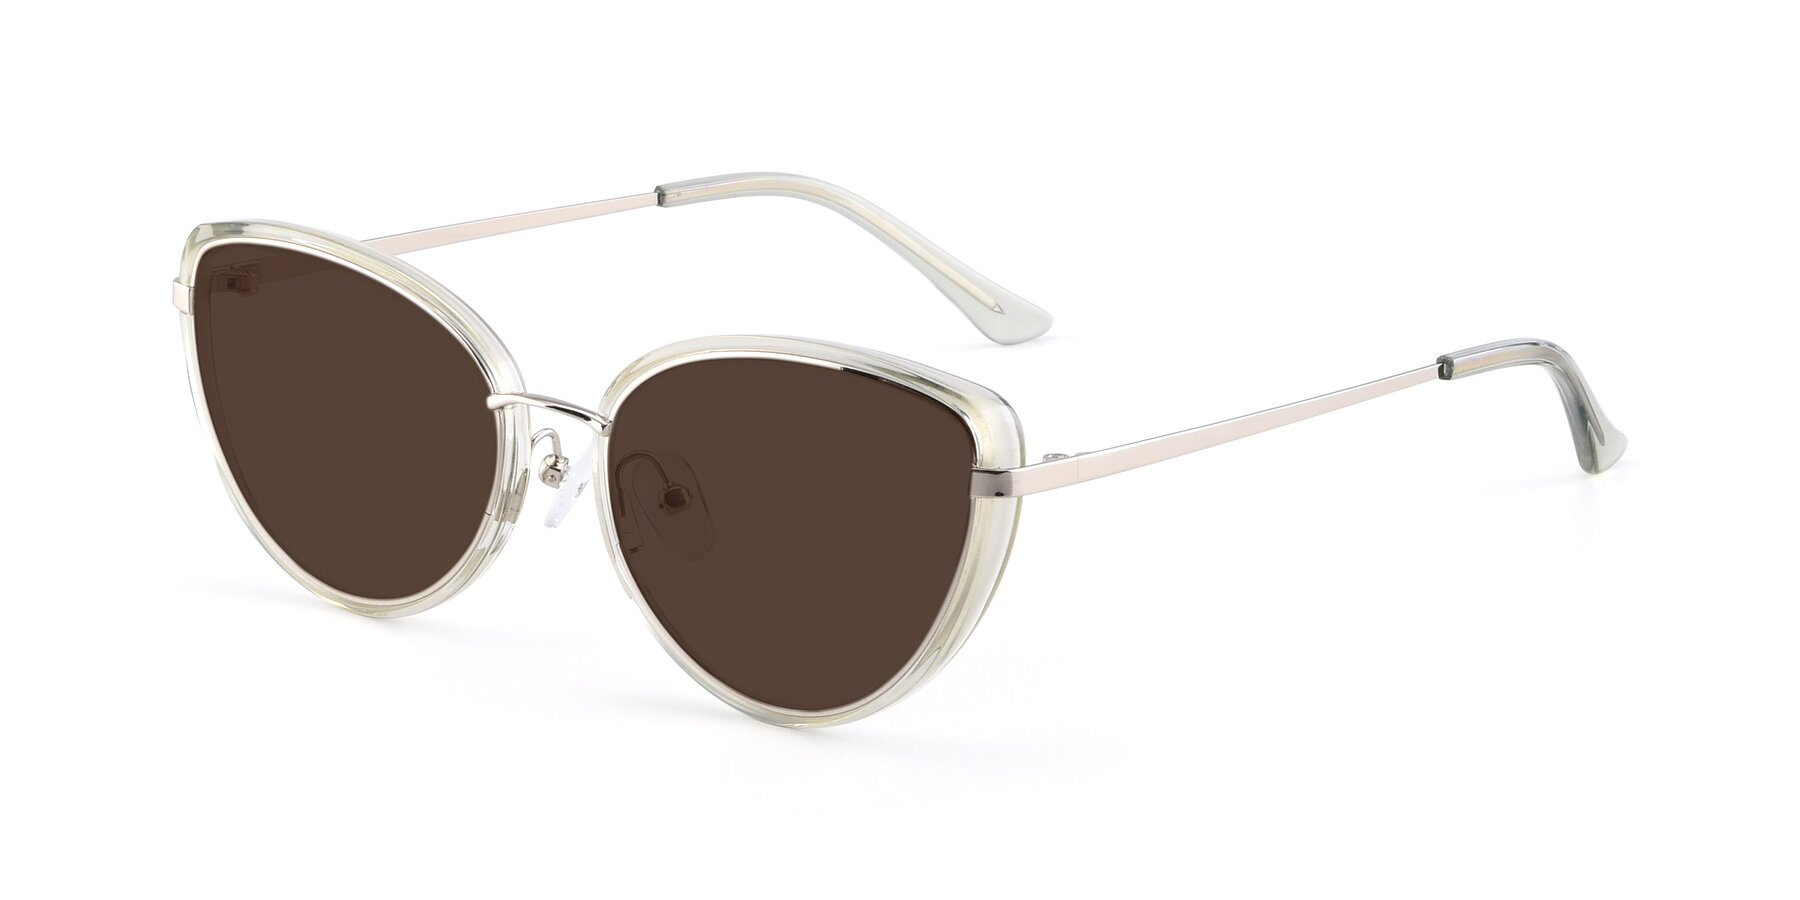 Angle of 17706 in Transparent Green-Silver with Brown Tinted Lenses